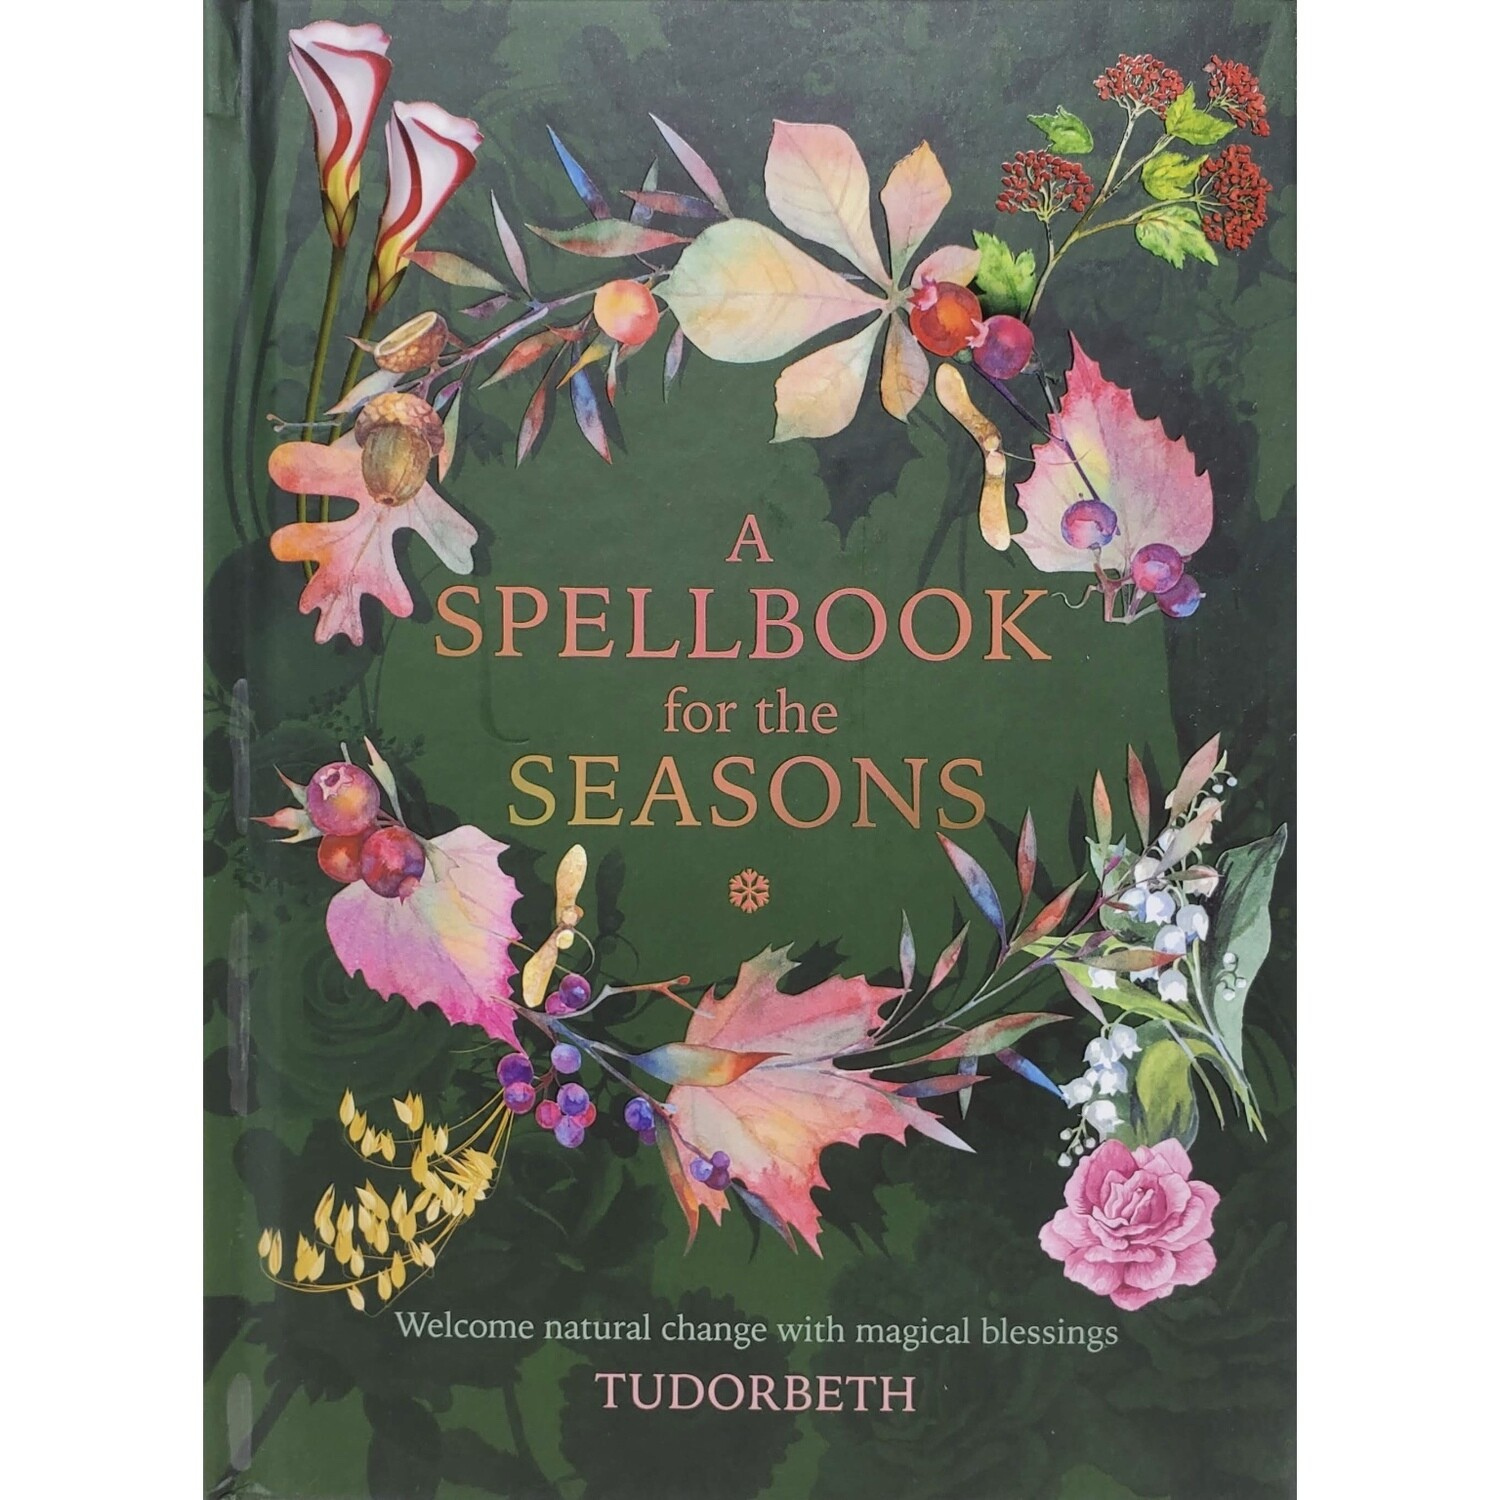 A SPELLBOOK FOR THE SEASONS